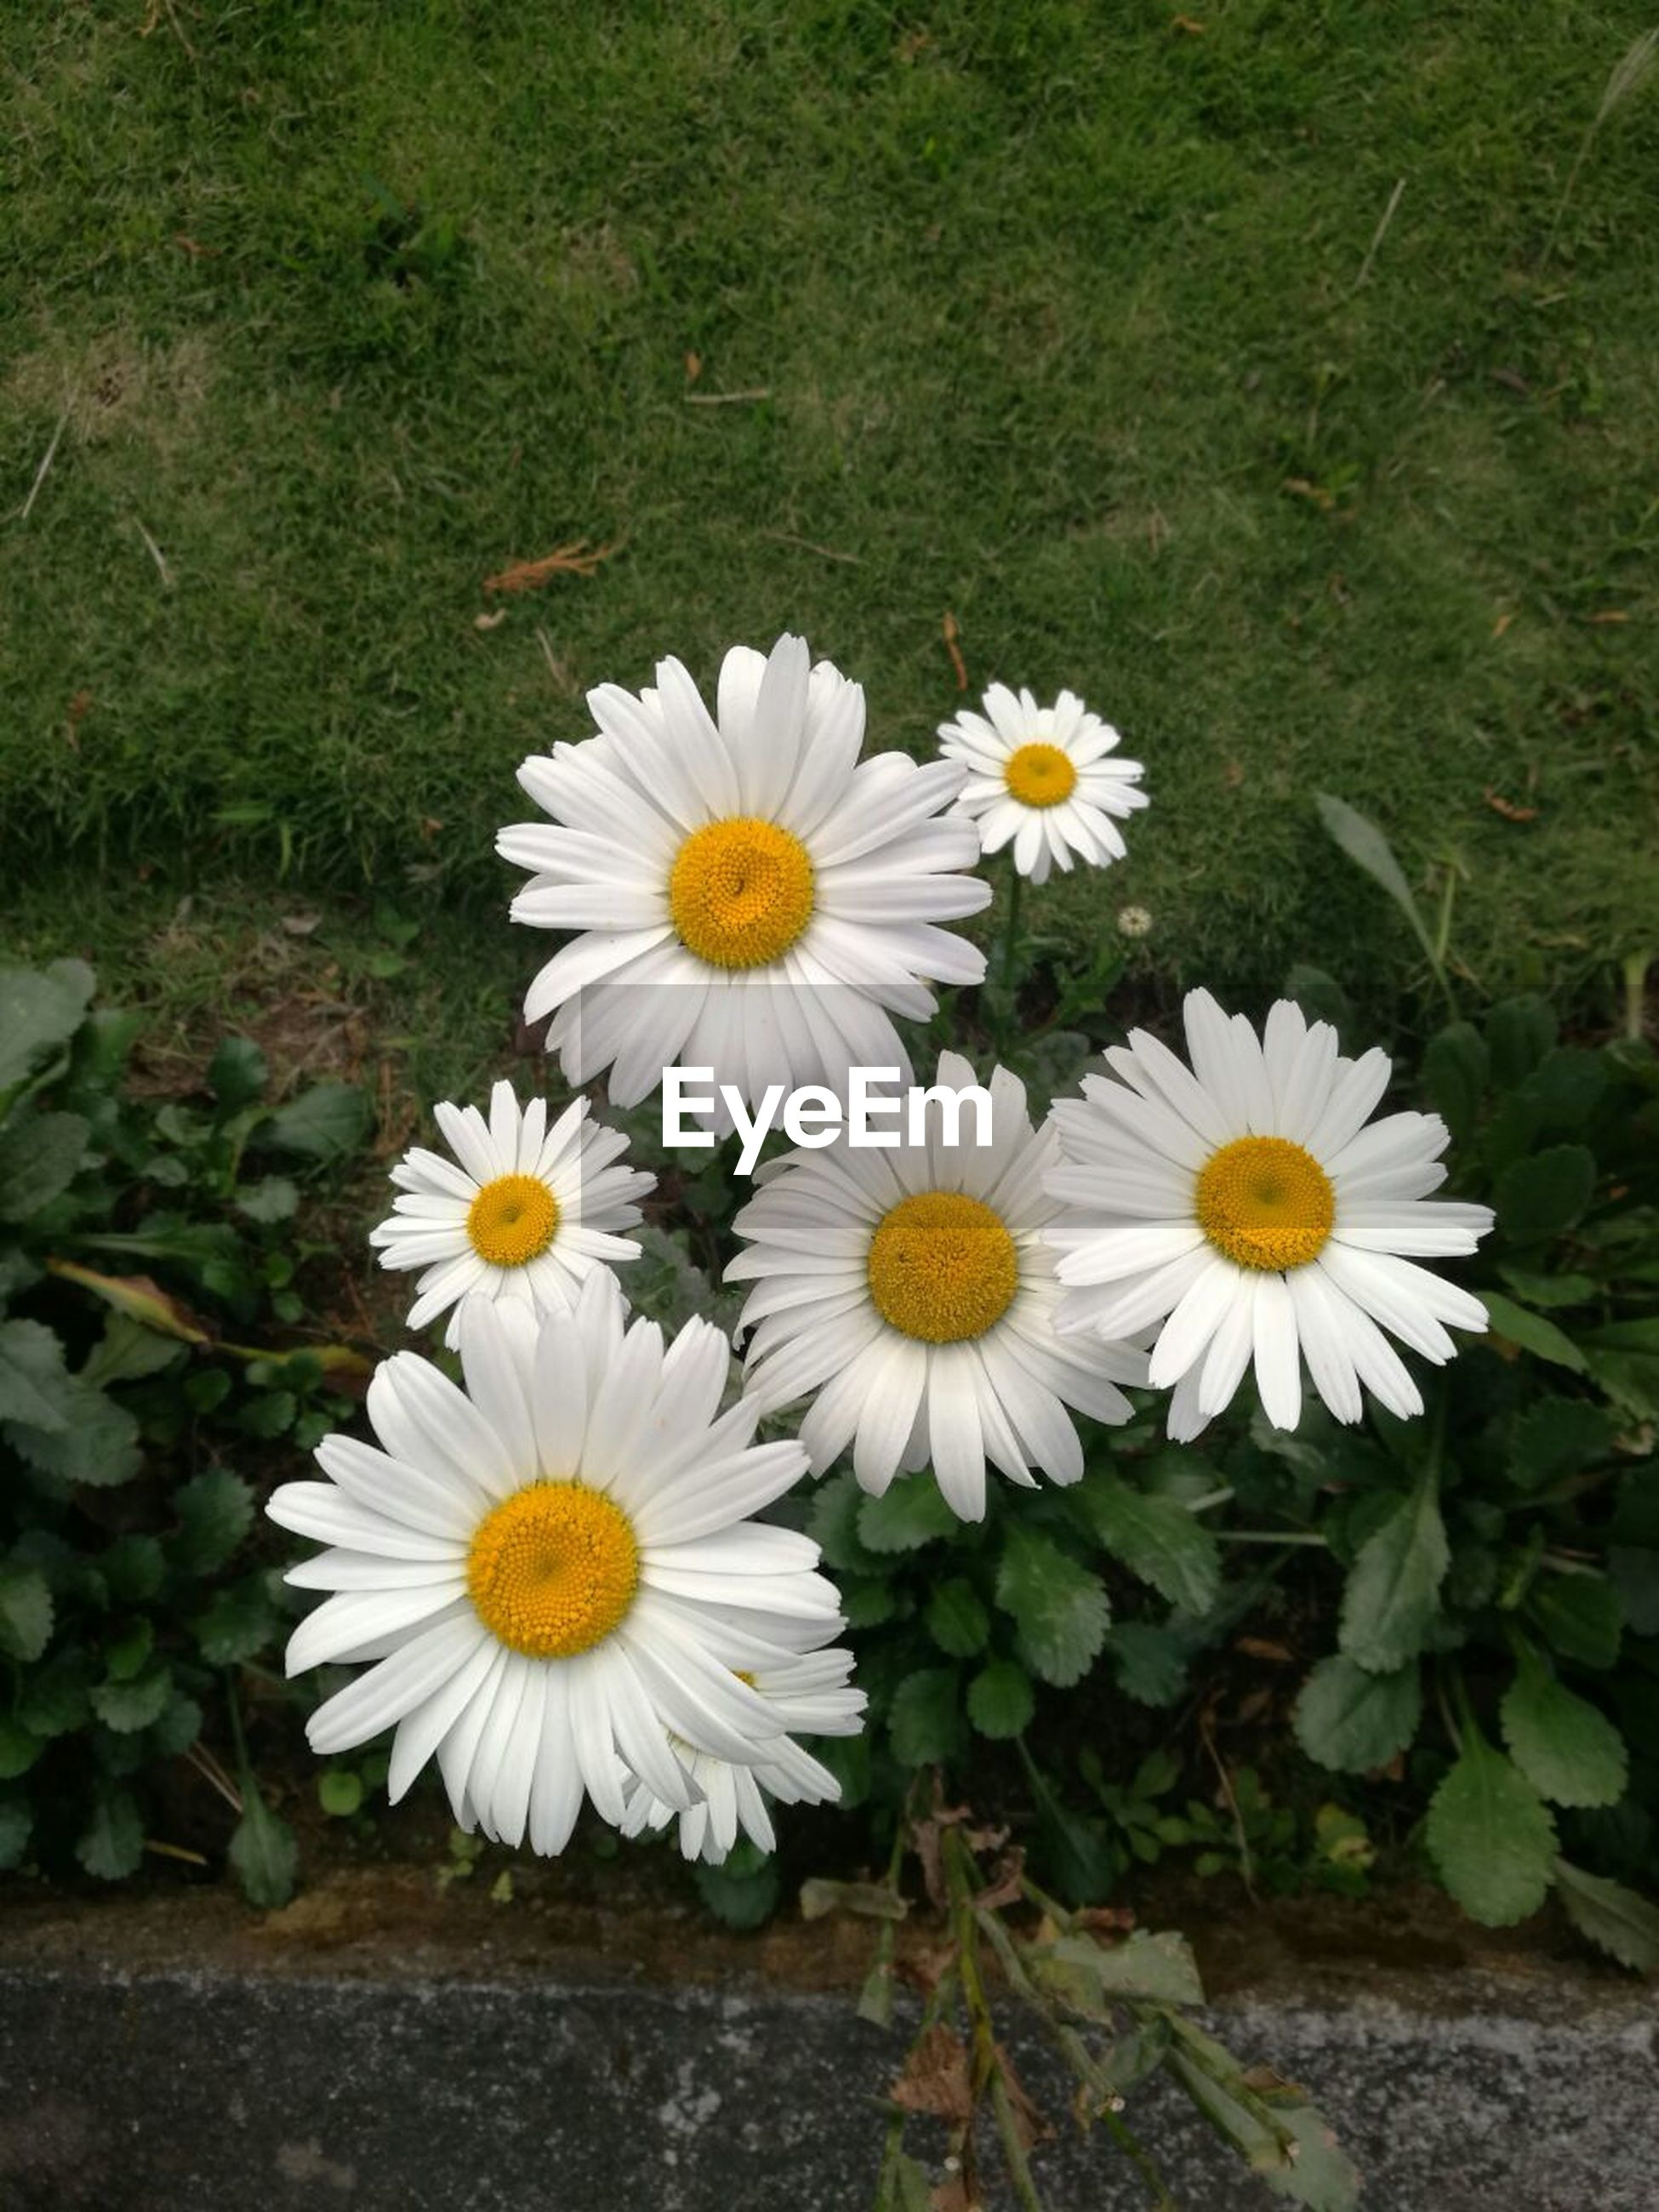 flower, nature, white color, beauty in nature, petal, yellow, growth, fragility, freshness, outdoors, plant, no people, day, flower head, blooming, grass, close-up